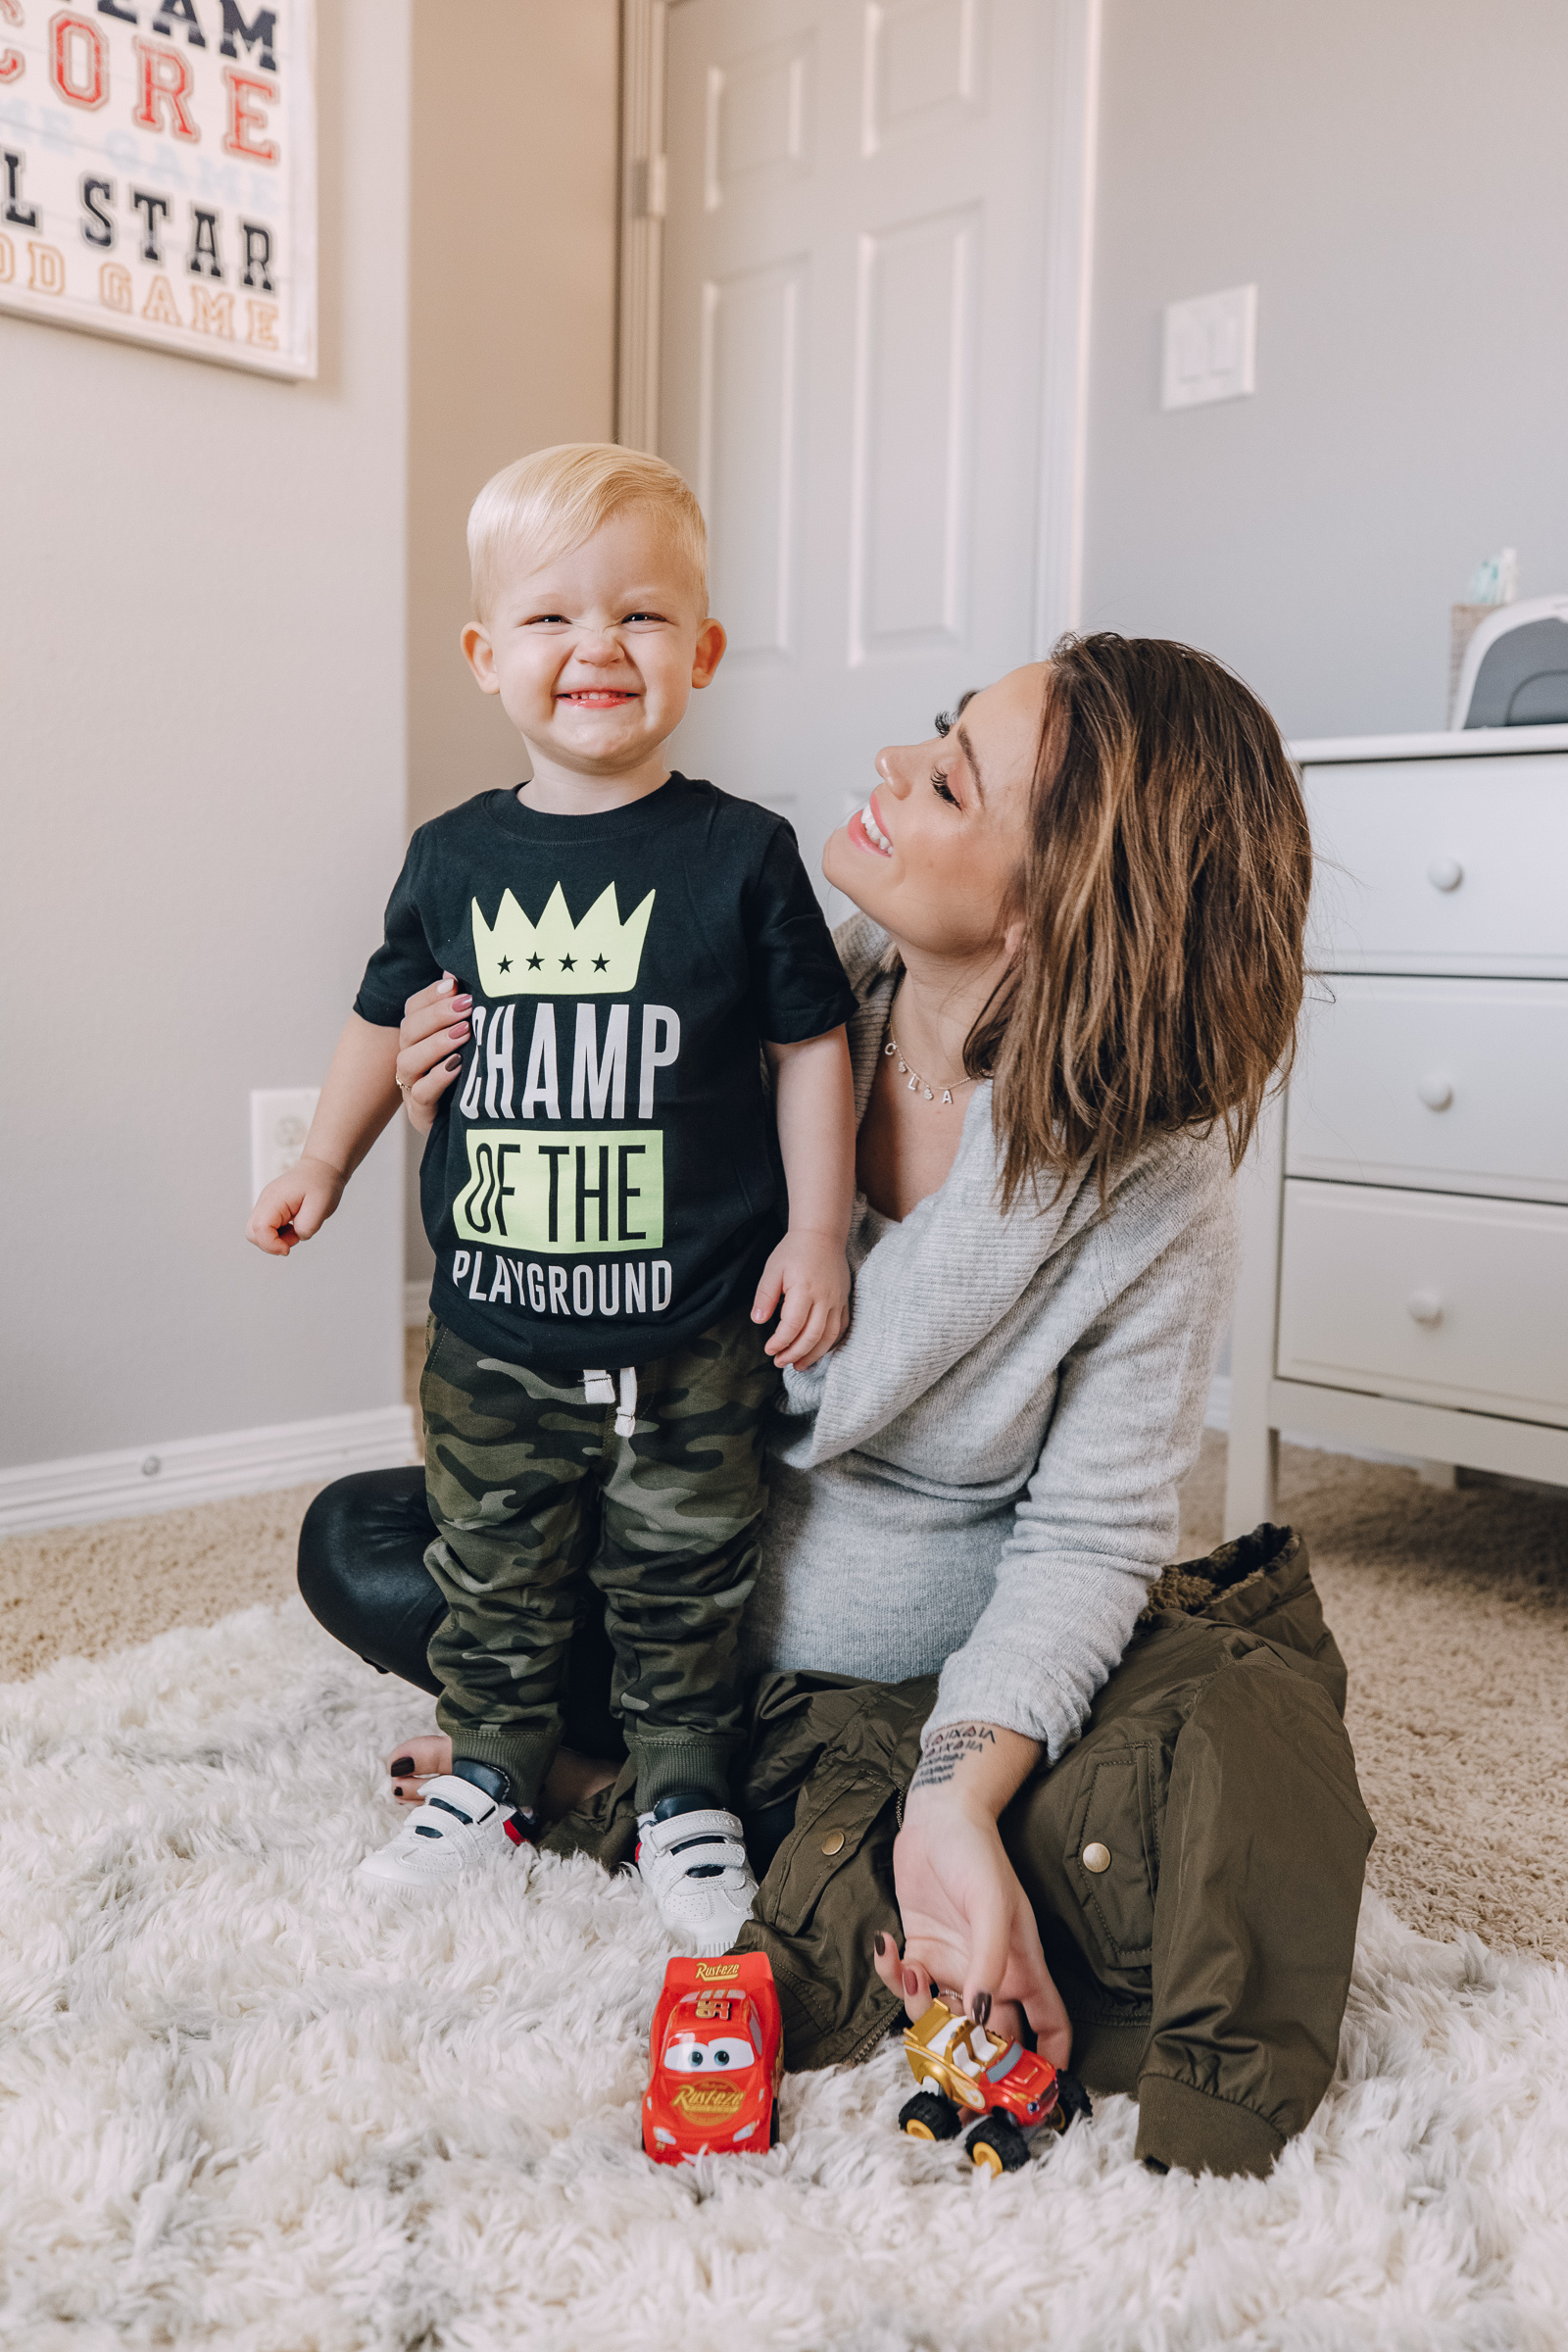 lifestyle blogger Elly Brown shares where she buys toddler clothes for her kids at great prices!